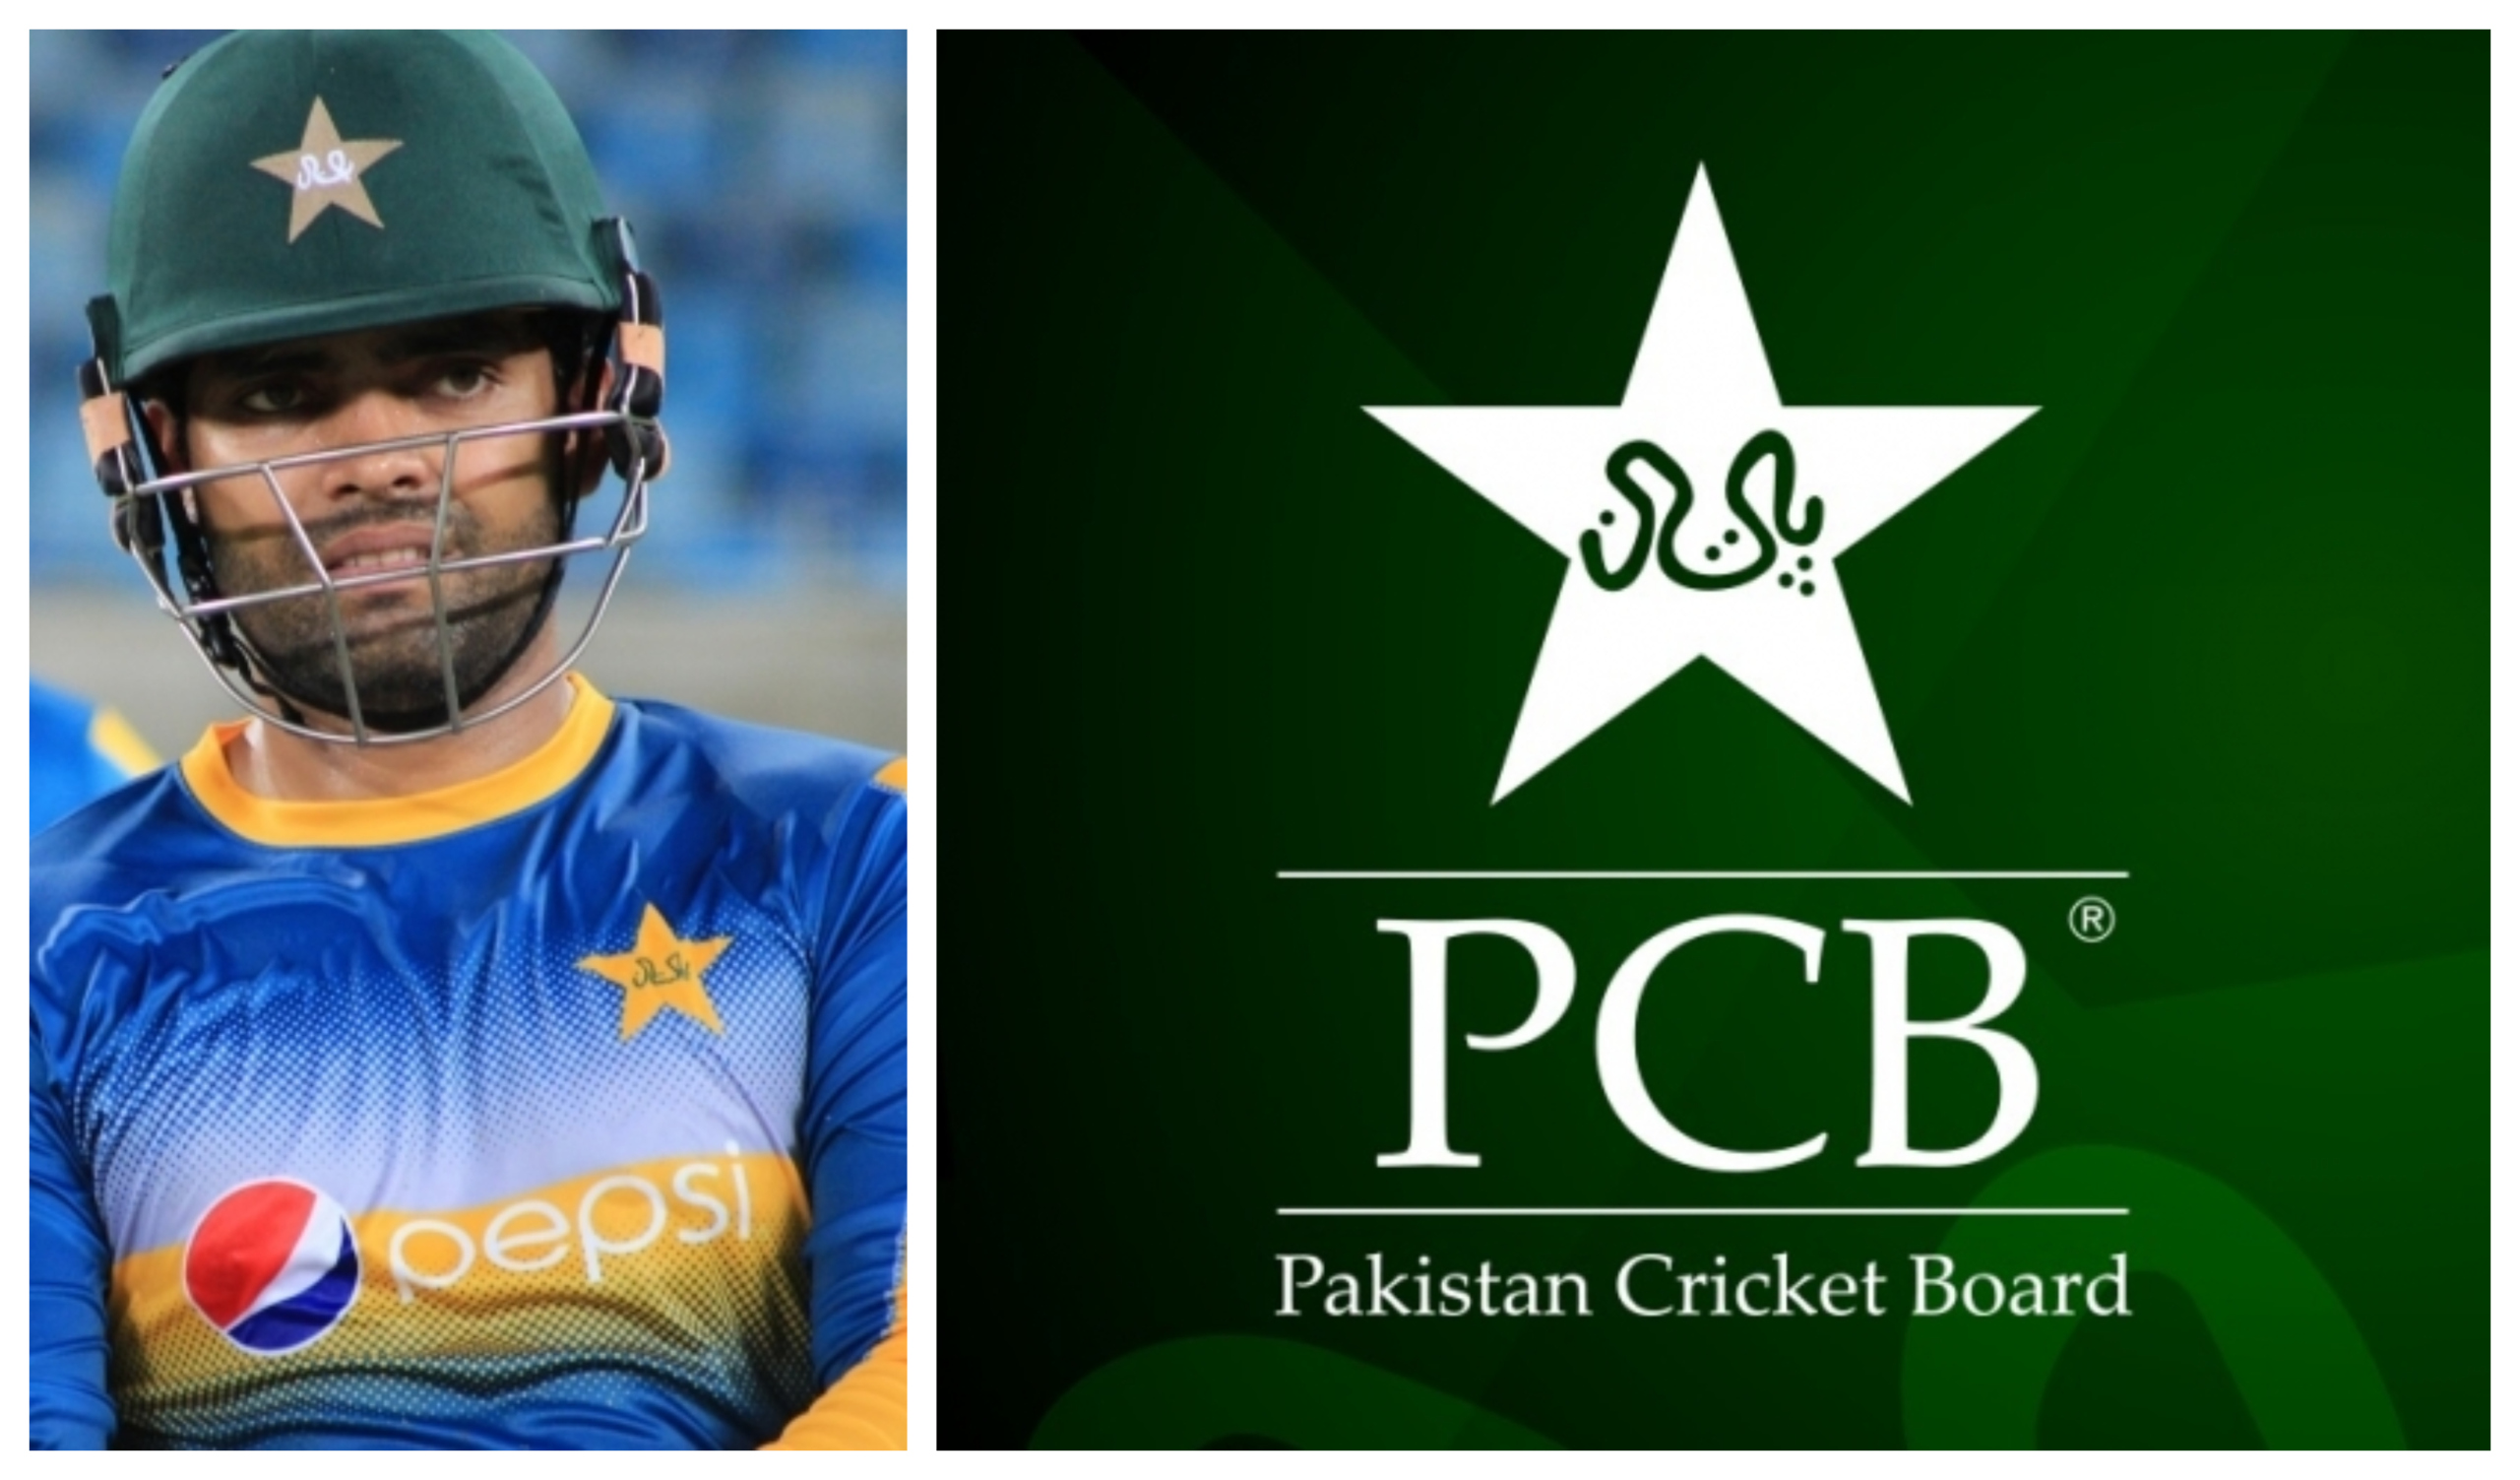 PCB to reverse the relief granted to Umar Akmal. Image courtesy: Crictribune